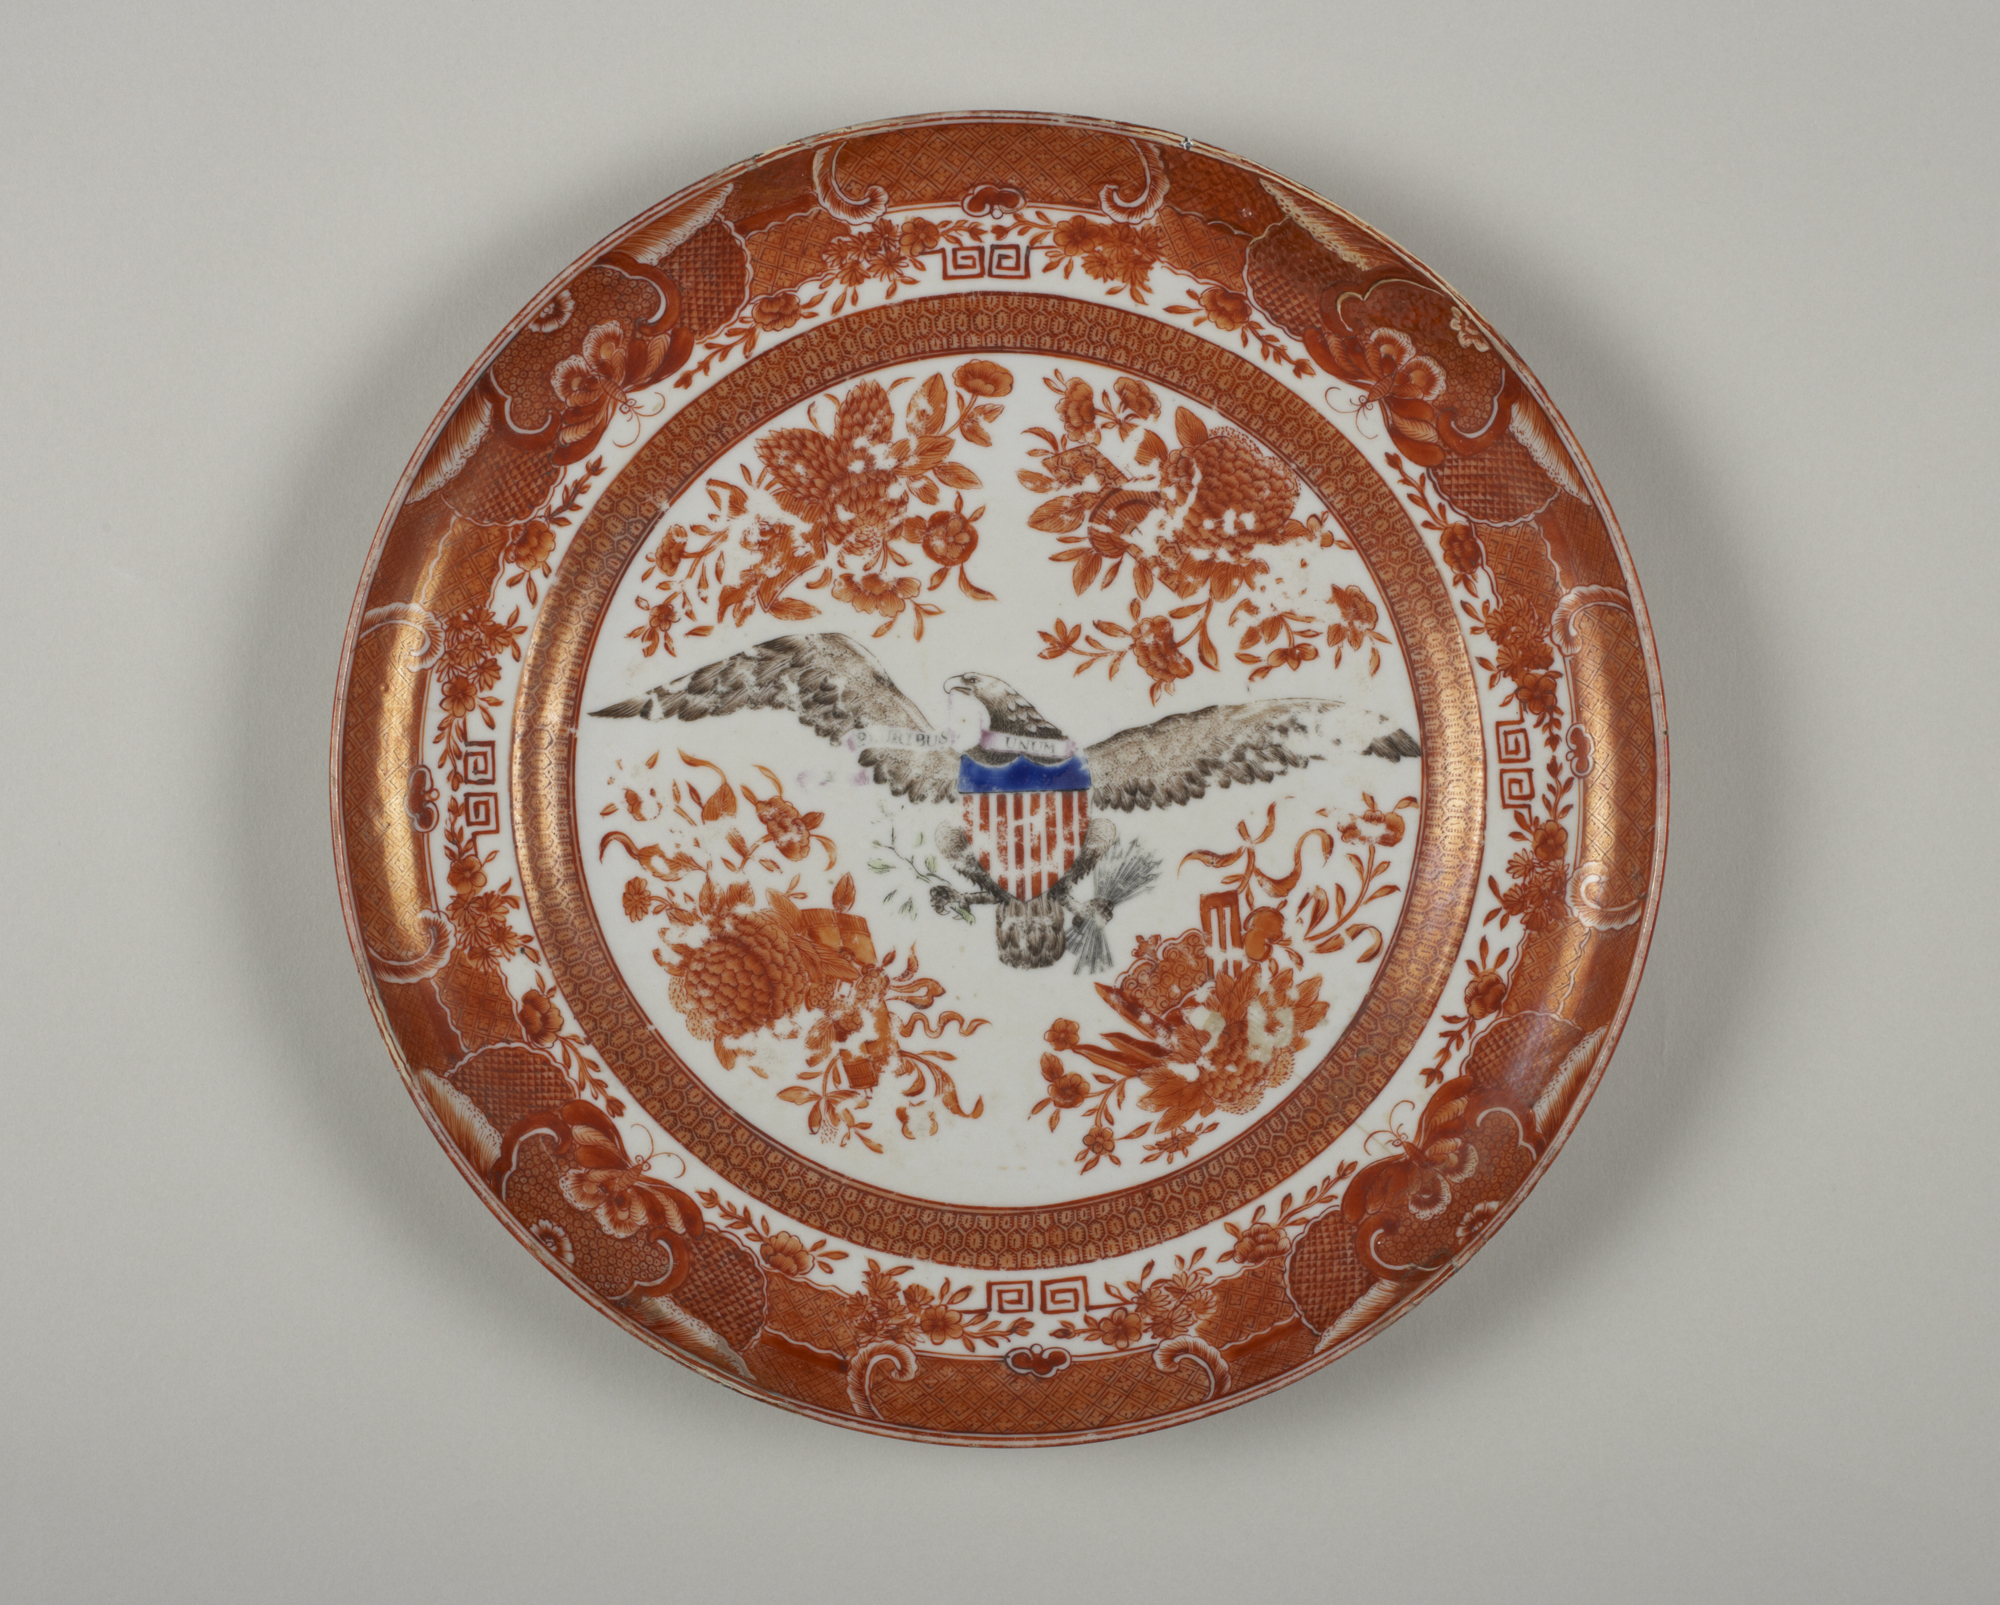 Chinese, Qing dynasty, 1644–1912: American Eagle plate, ca. 1790. Porcelain with overglaze enamels, h. 2.4 cm., diam. 24.7 cm. Gift of Clement K. Corbin, Class of 1902 (y1965-281).